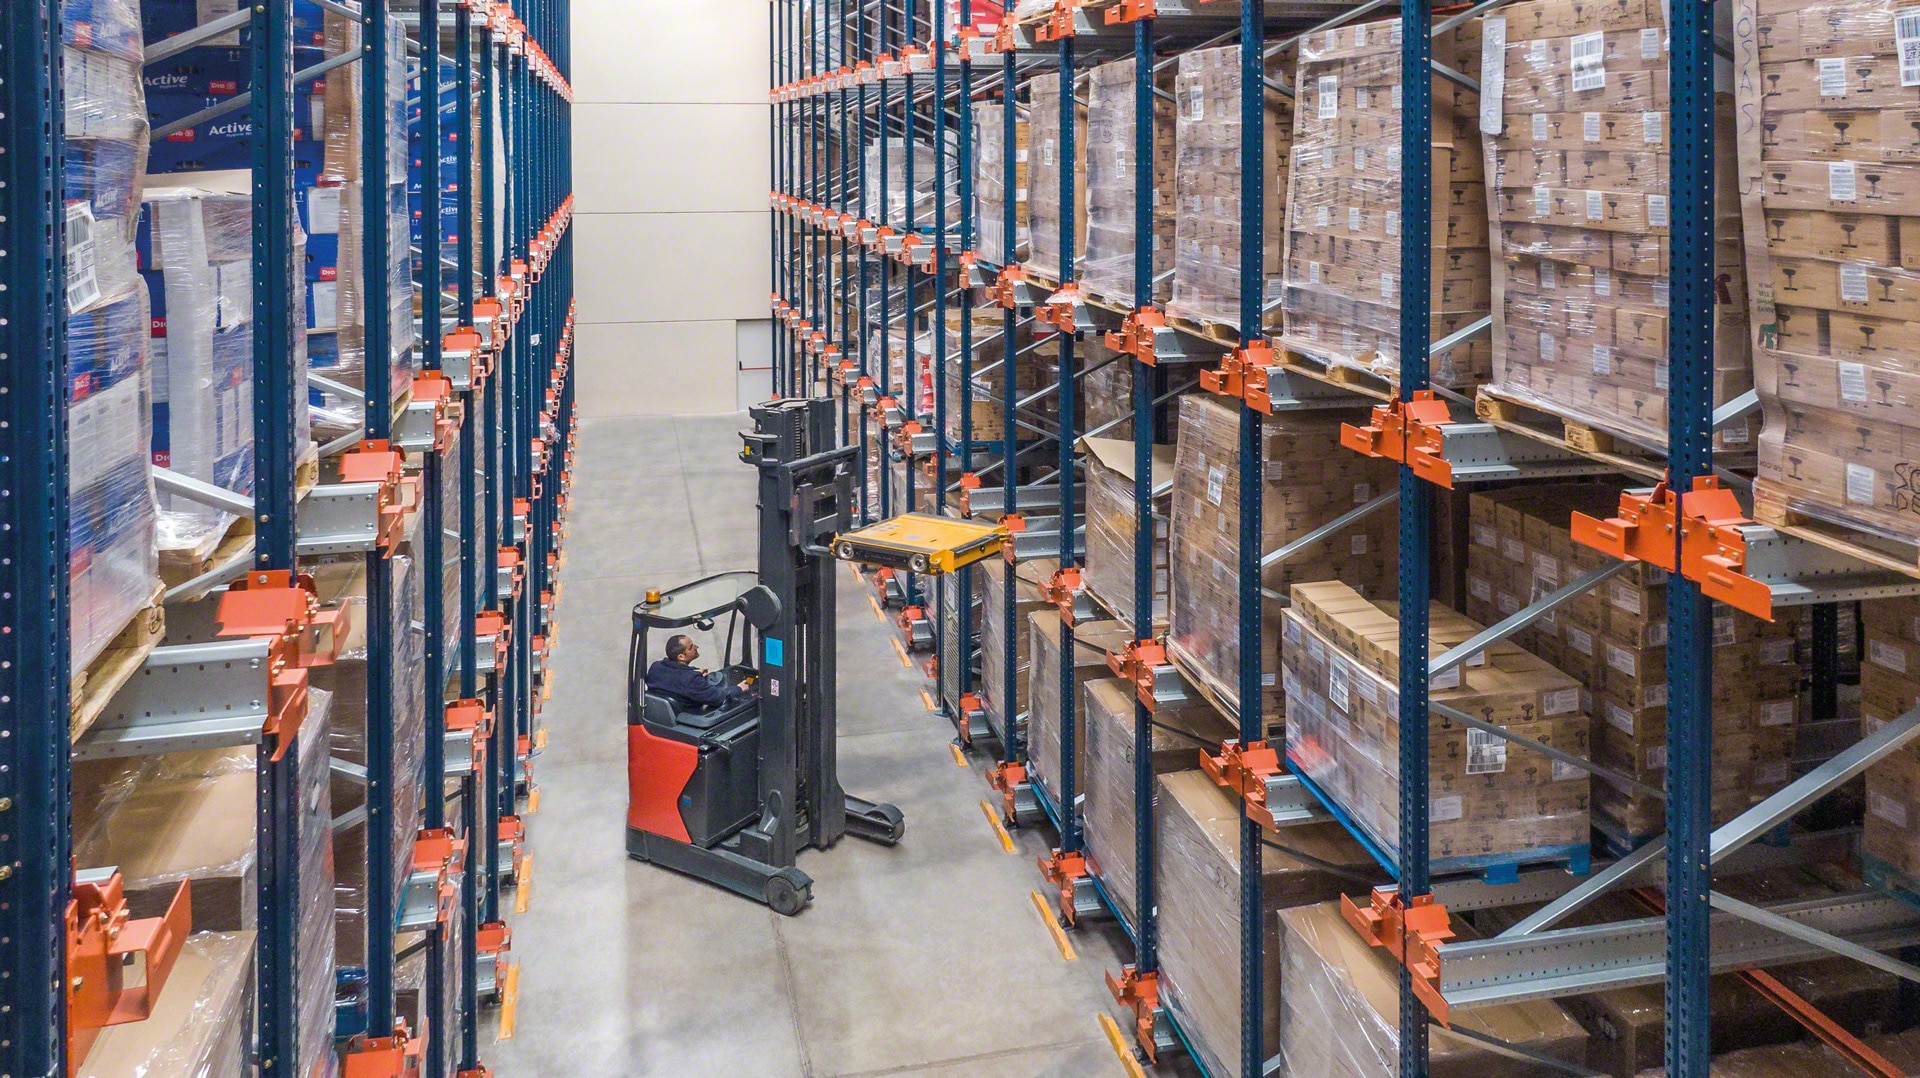 Forklift trucks place the shuttle in the storage channel to store or extract the goods in the high-density systems